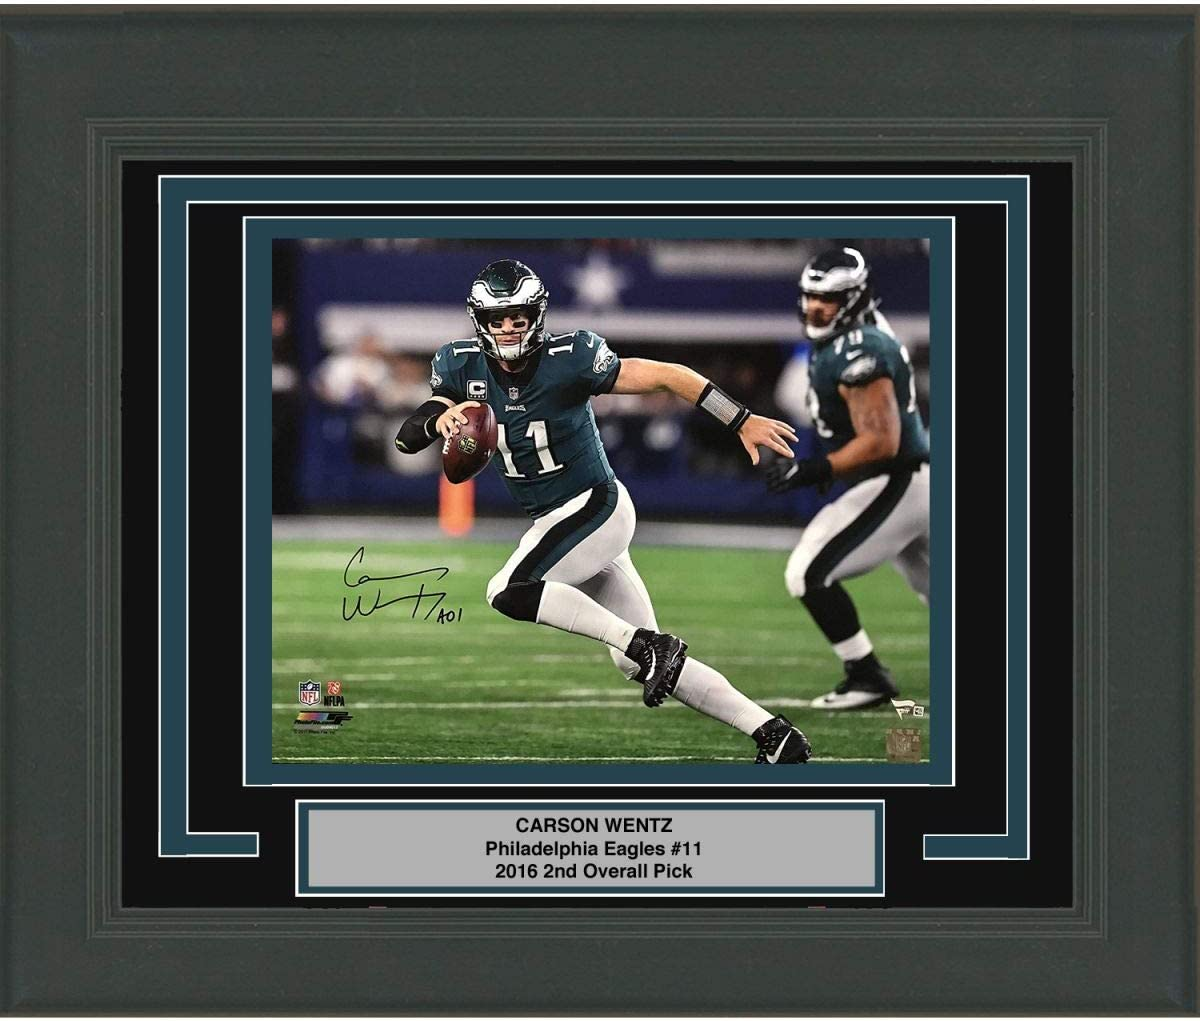 Framed Autographed//Signed Carson Wentz Philadelphia Eagles 16x20 Football Photo Fanatics COA #1